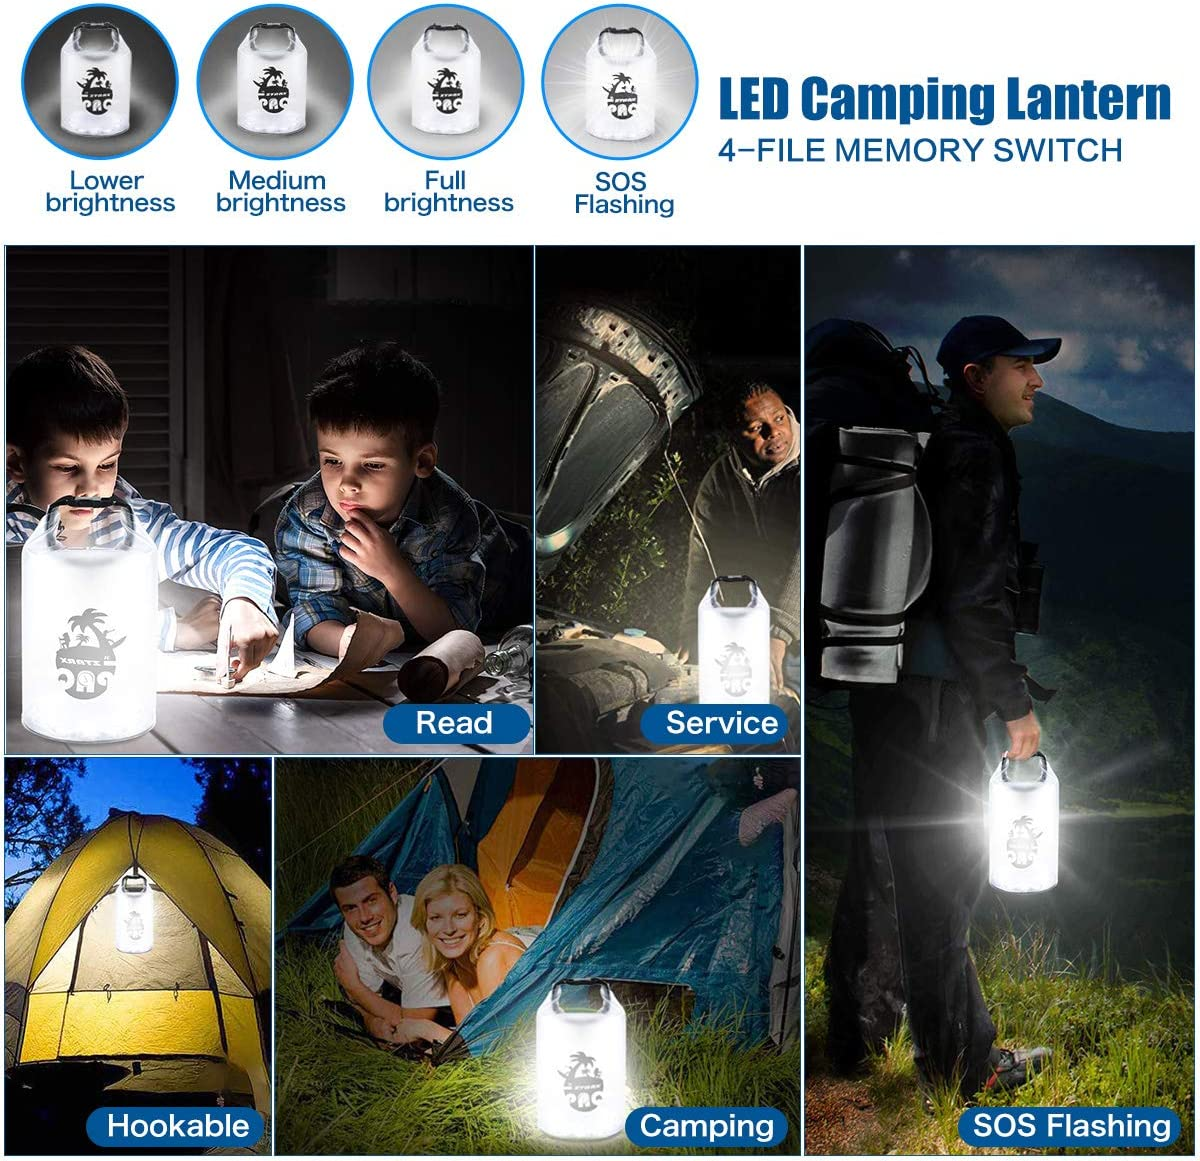 Free Amazon Promo Code 2020 for Solar Camping Lights